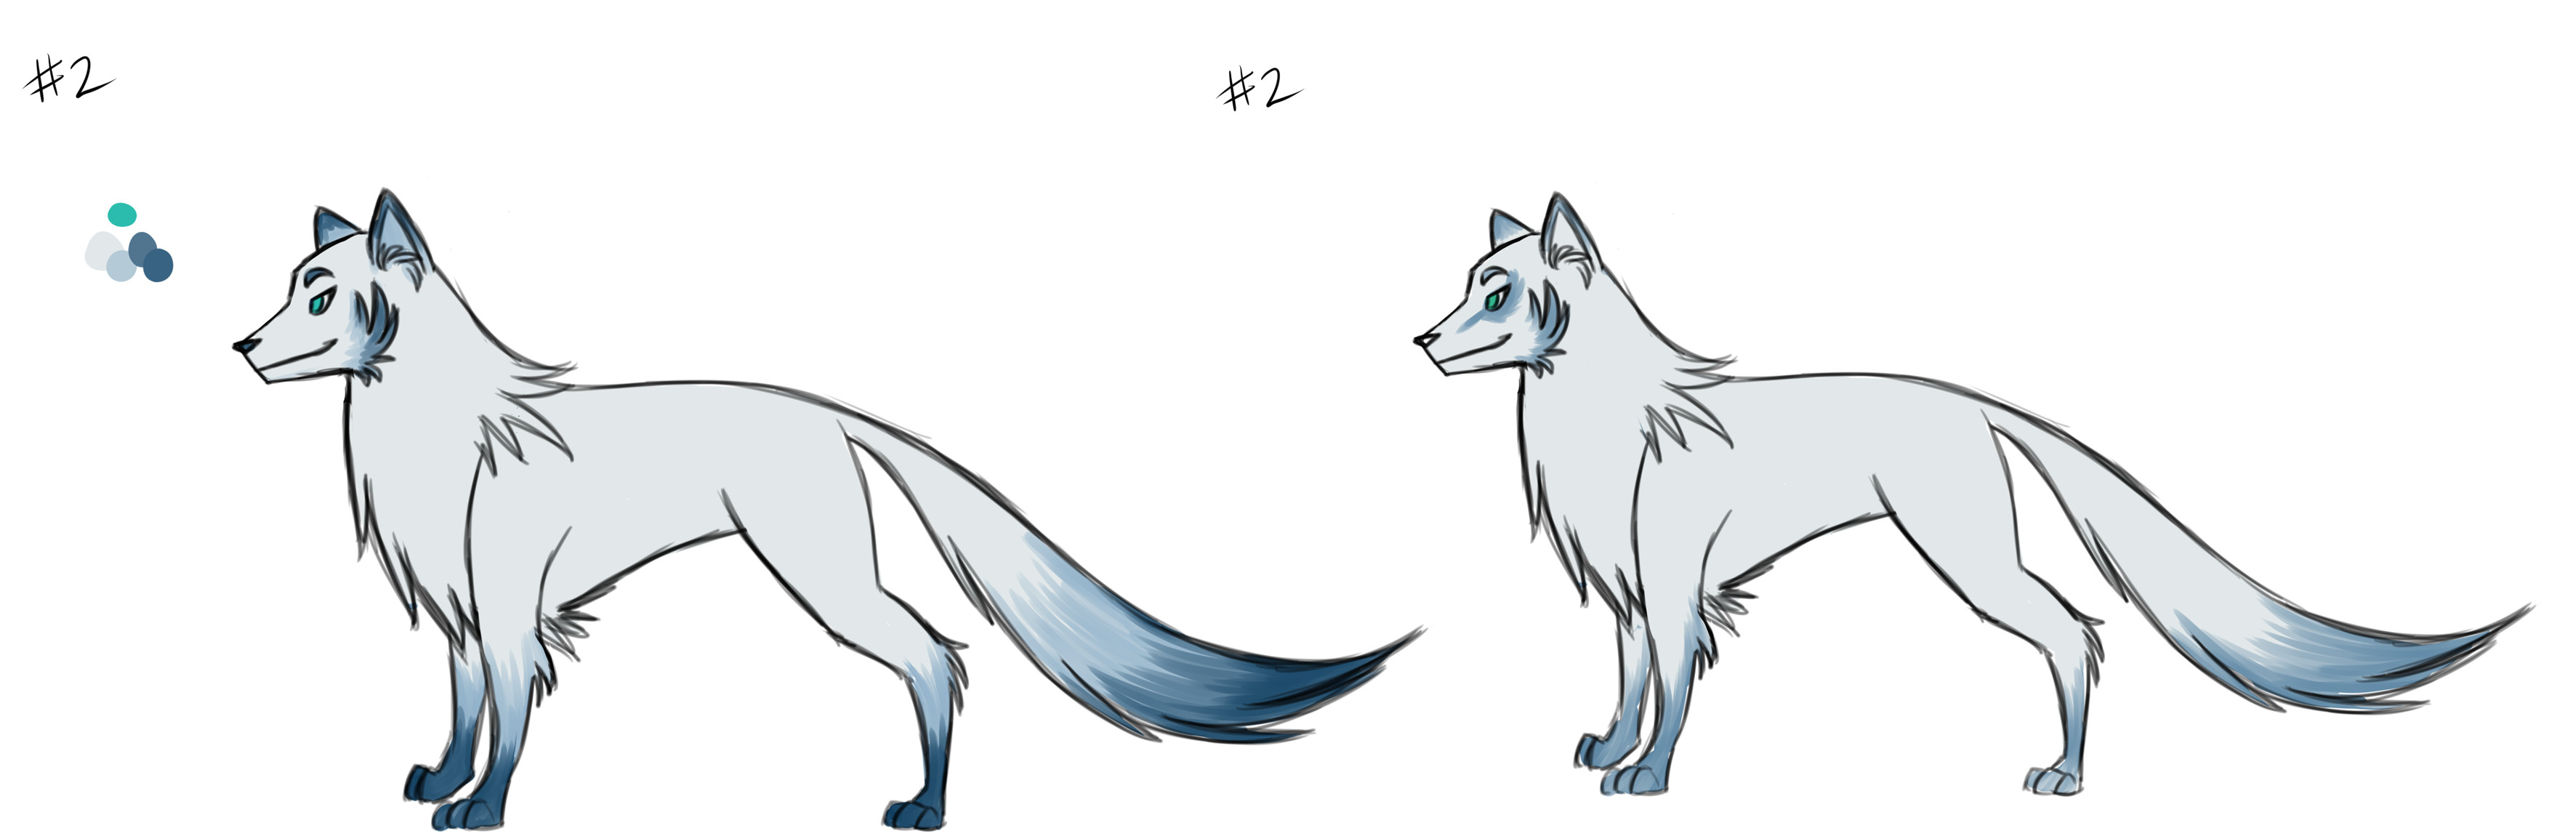 Concepts for Eiko the wolf